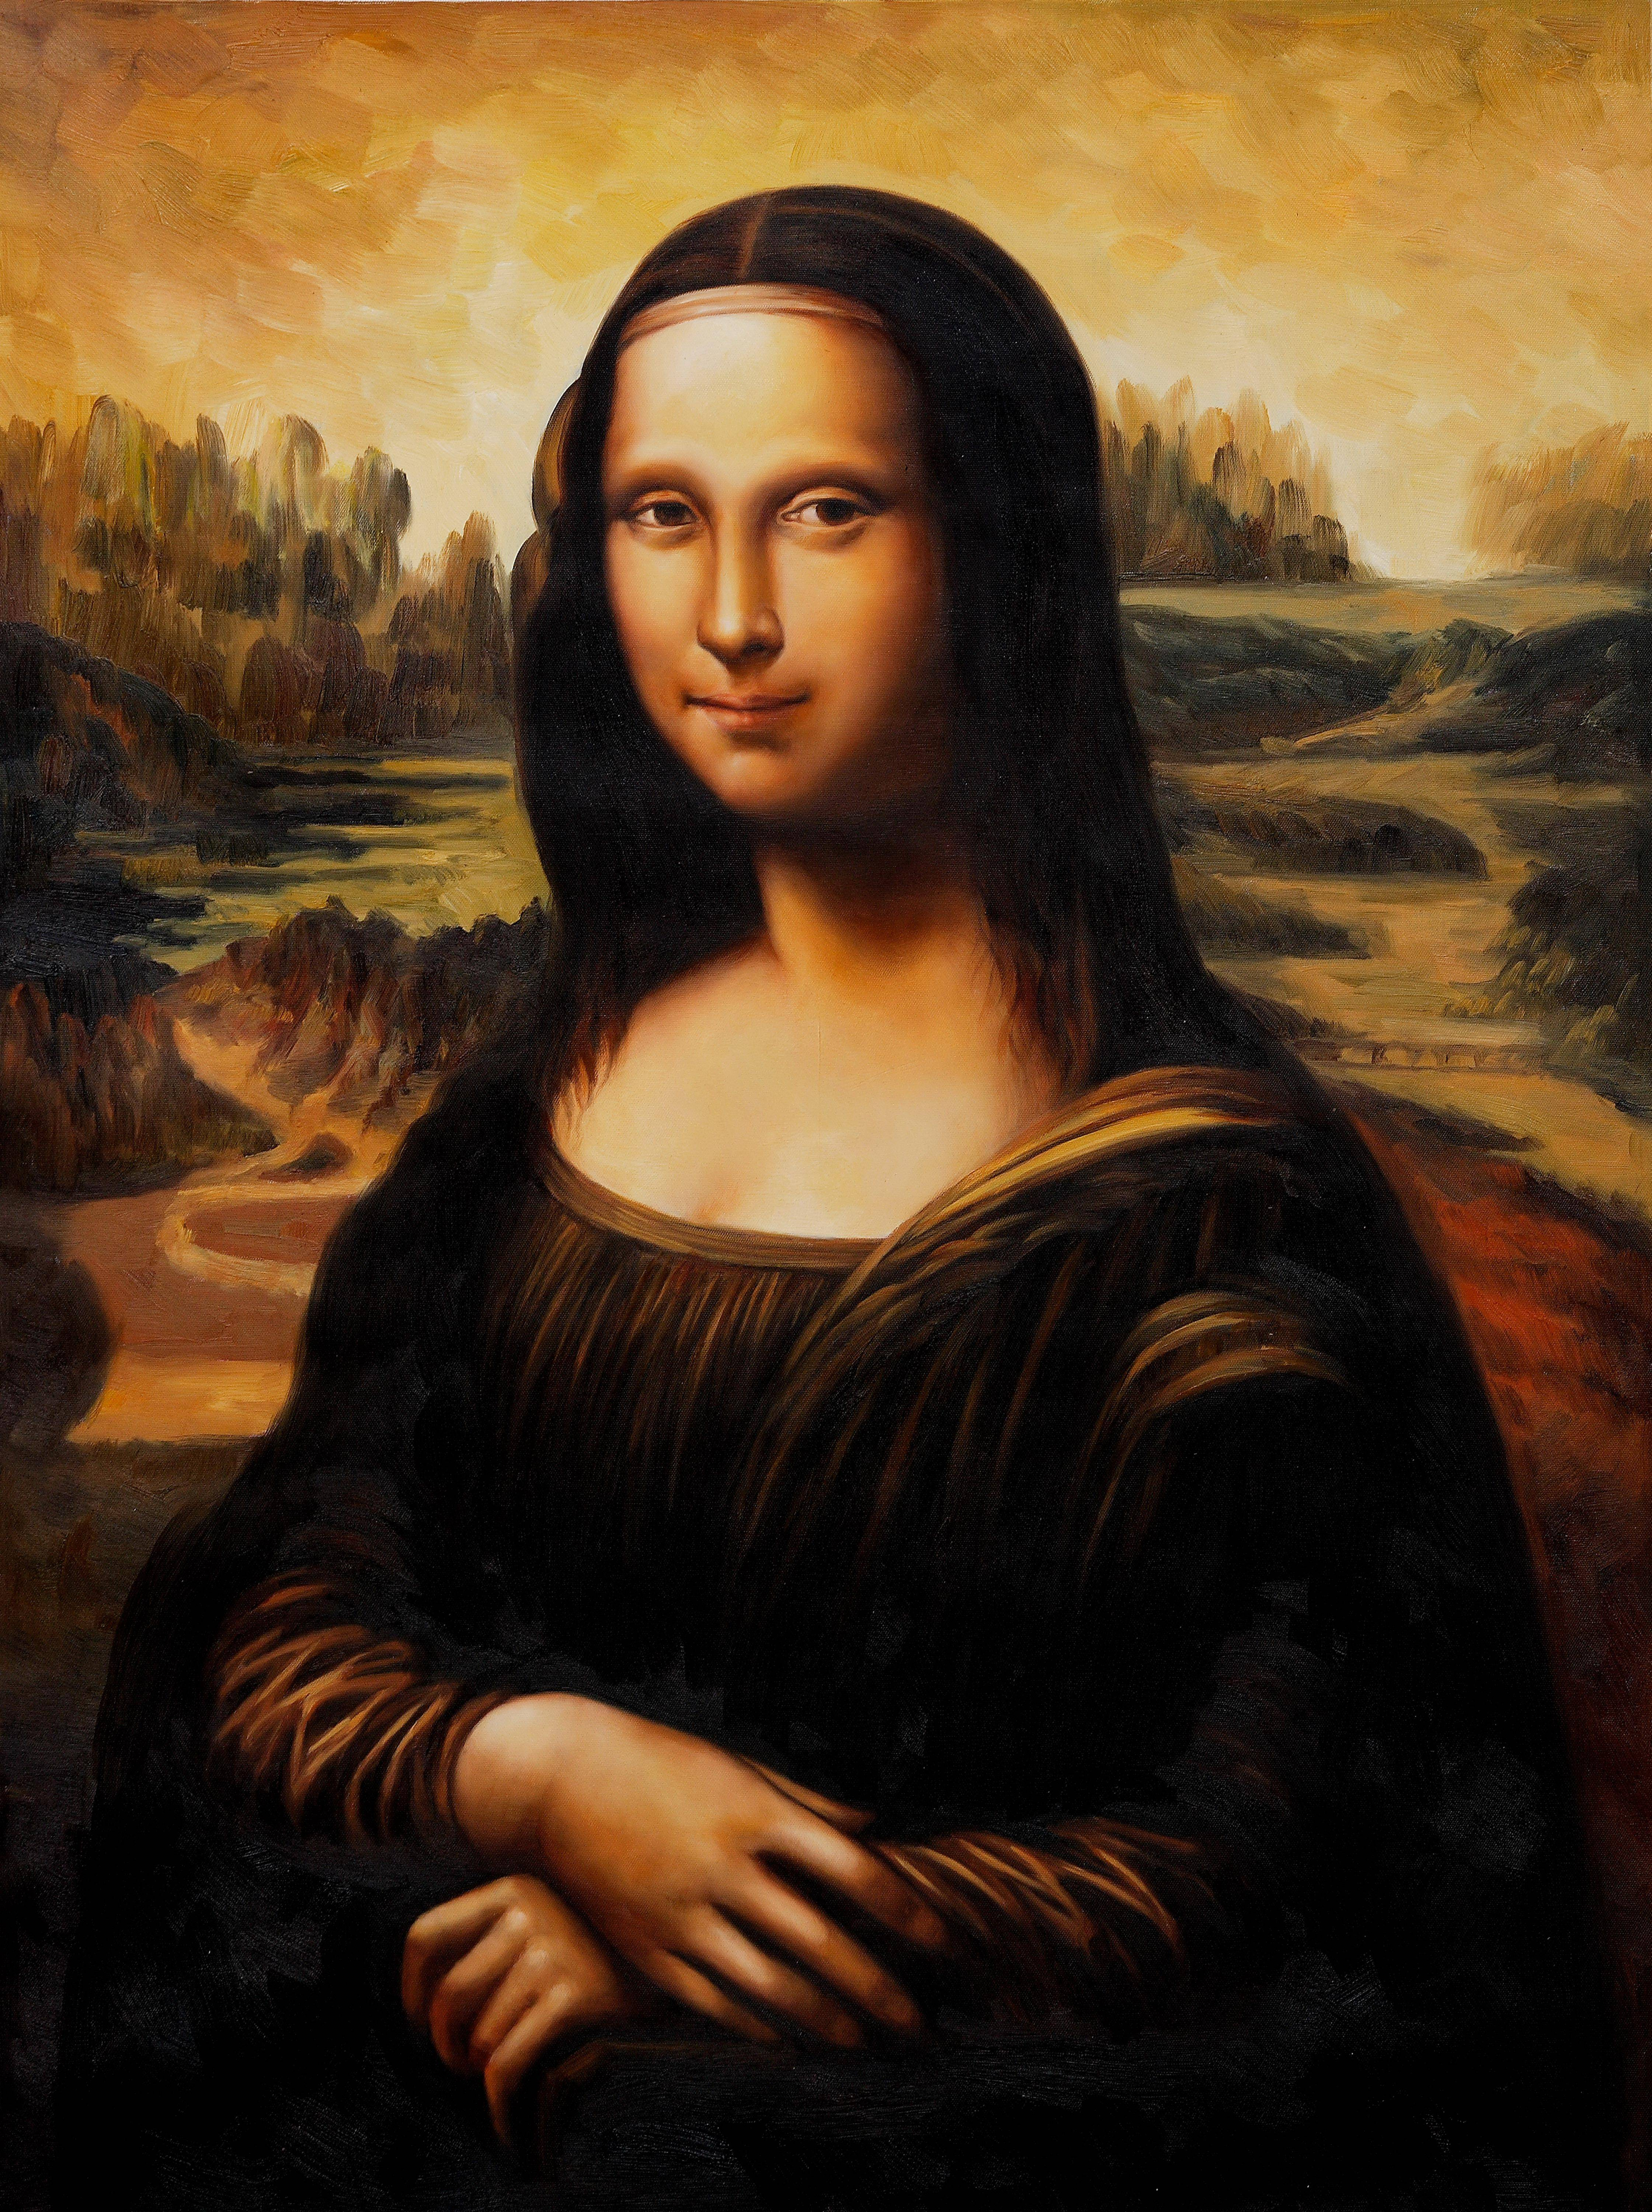 Monalisa painting hd wallpapers wallpaper cave monalisa wallpapers pack 79 50 monalisa wallpapers collection altavistaventures Gallery